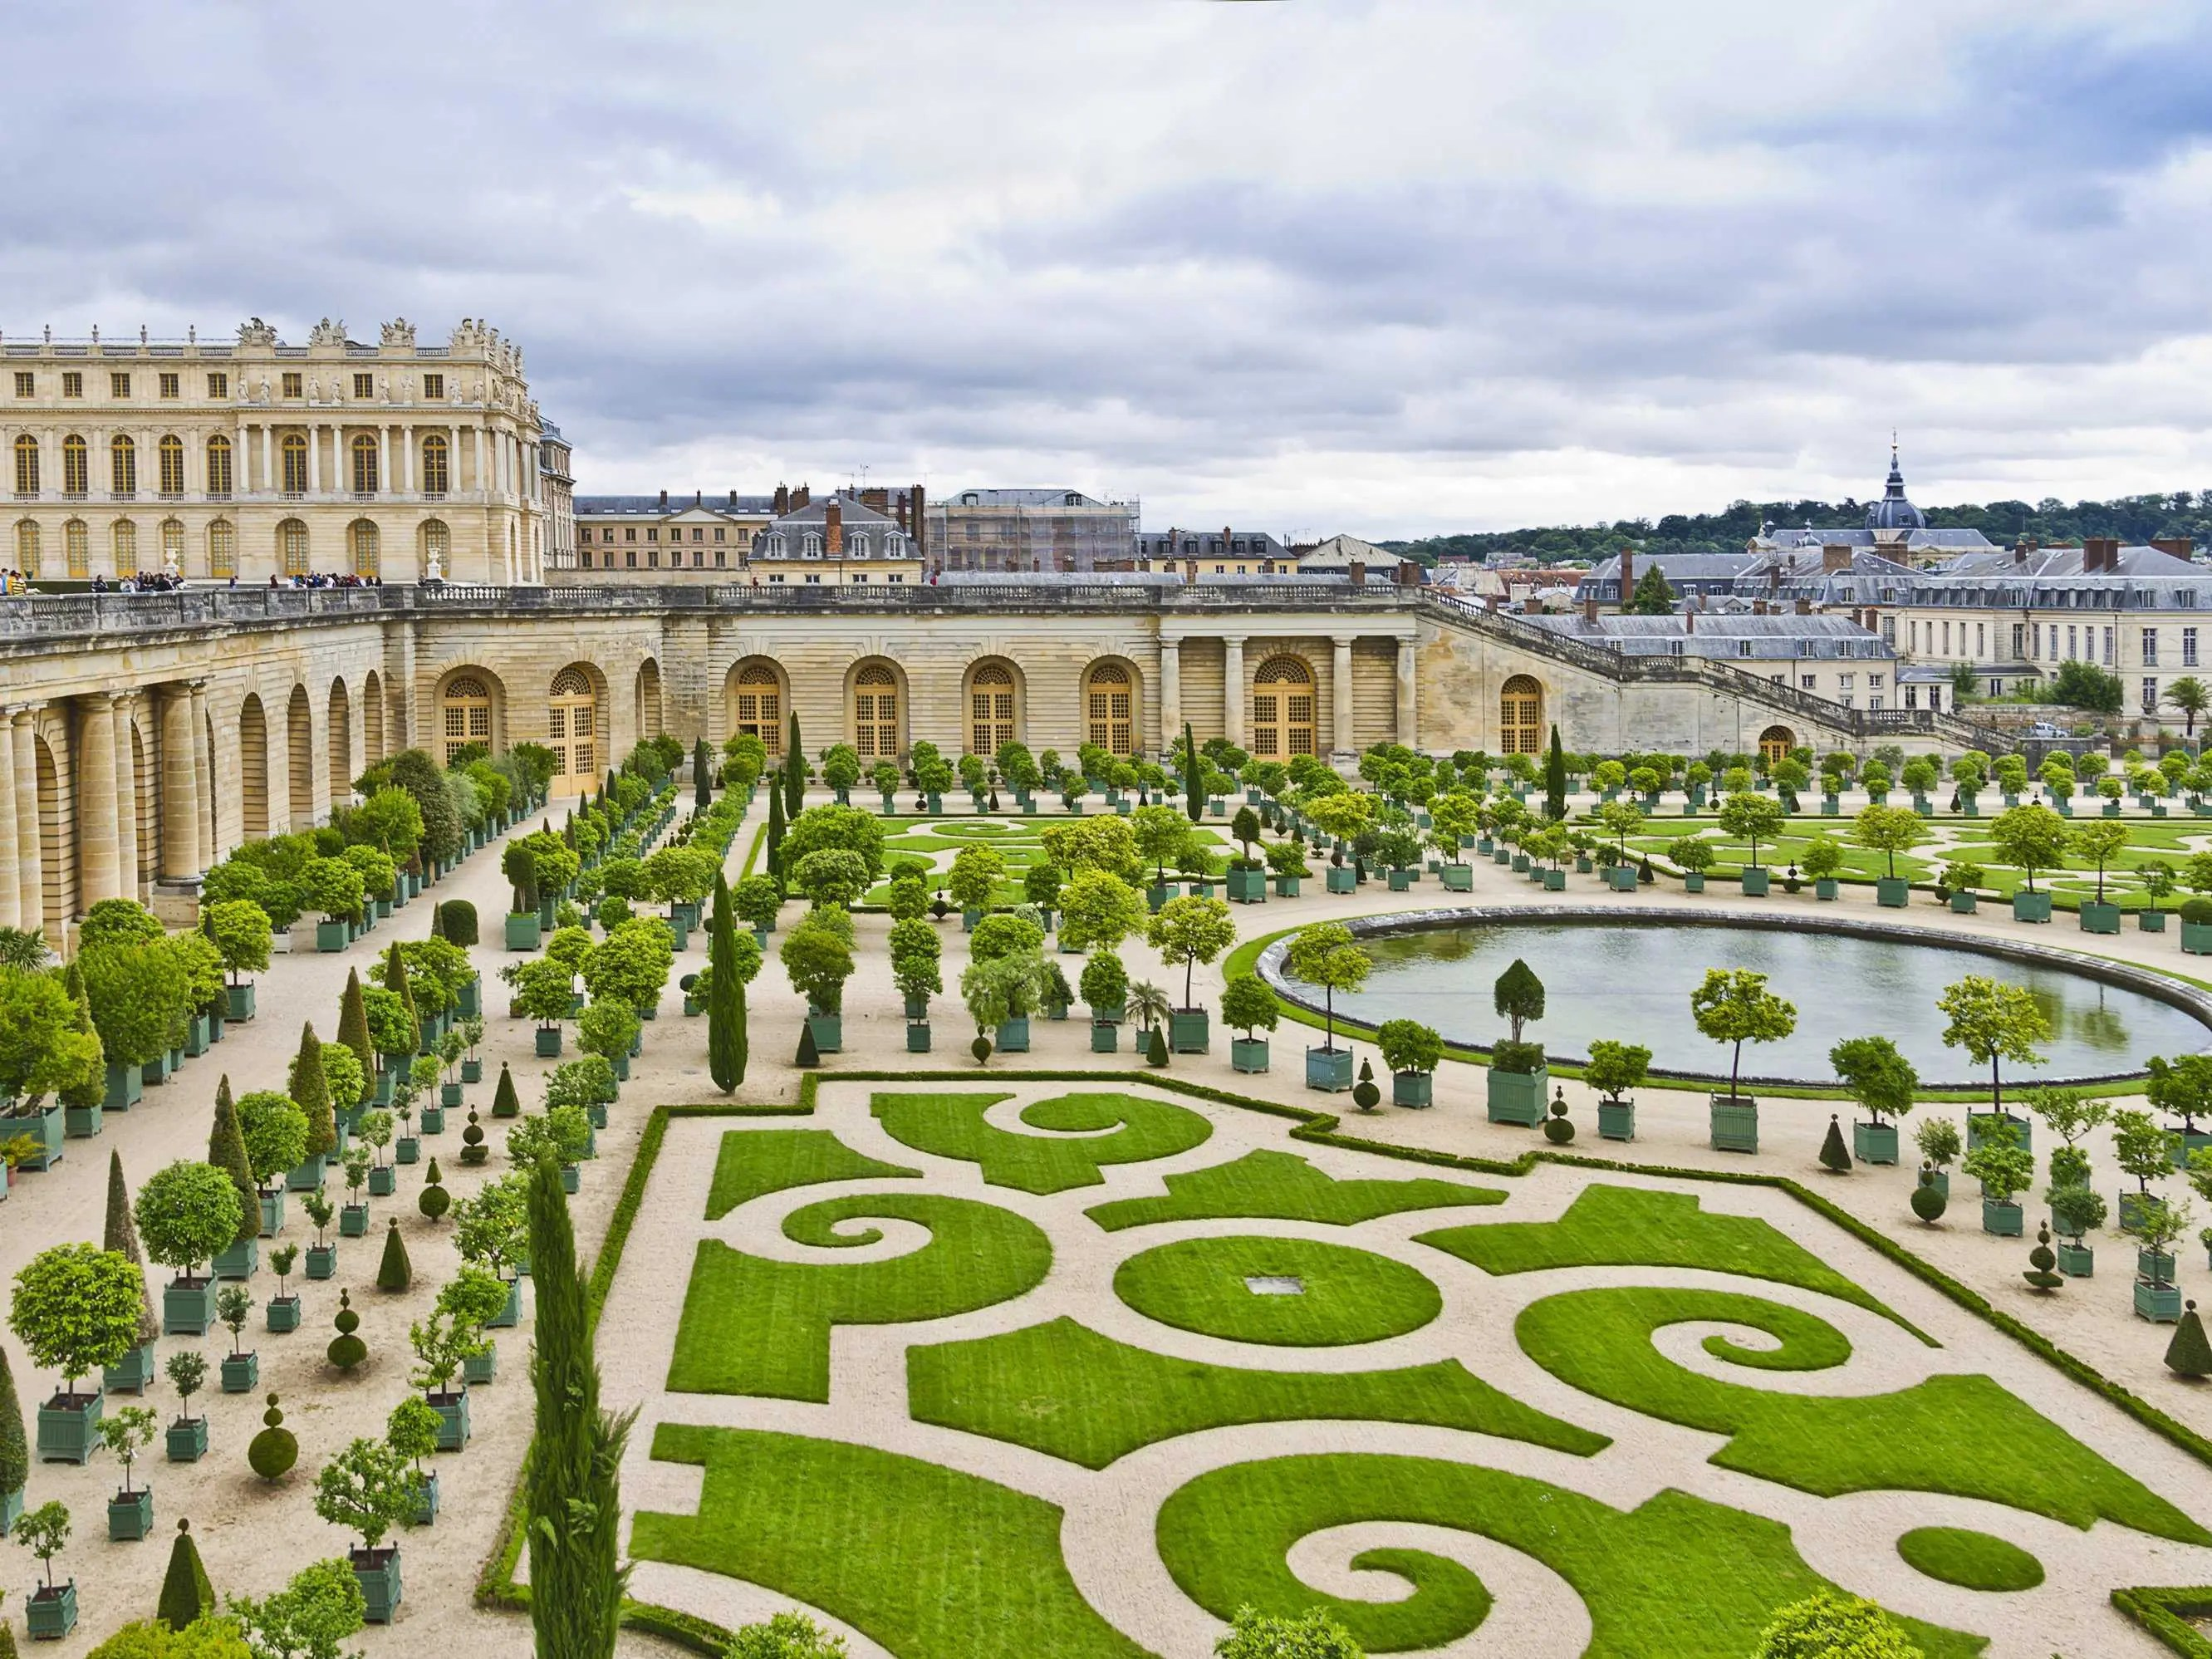 Get lost in the maze of gardens at the Palace of Versailles outside Paris, France.